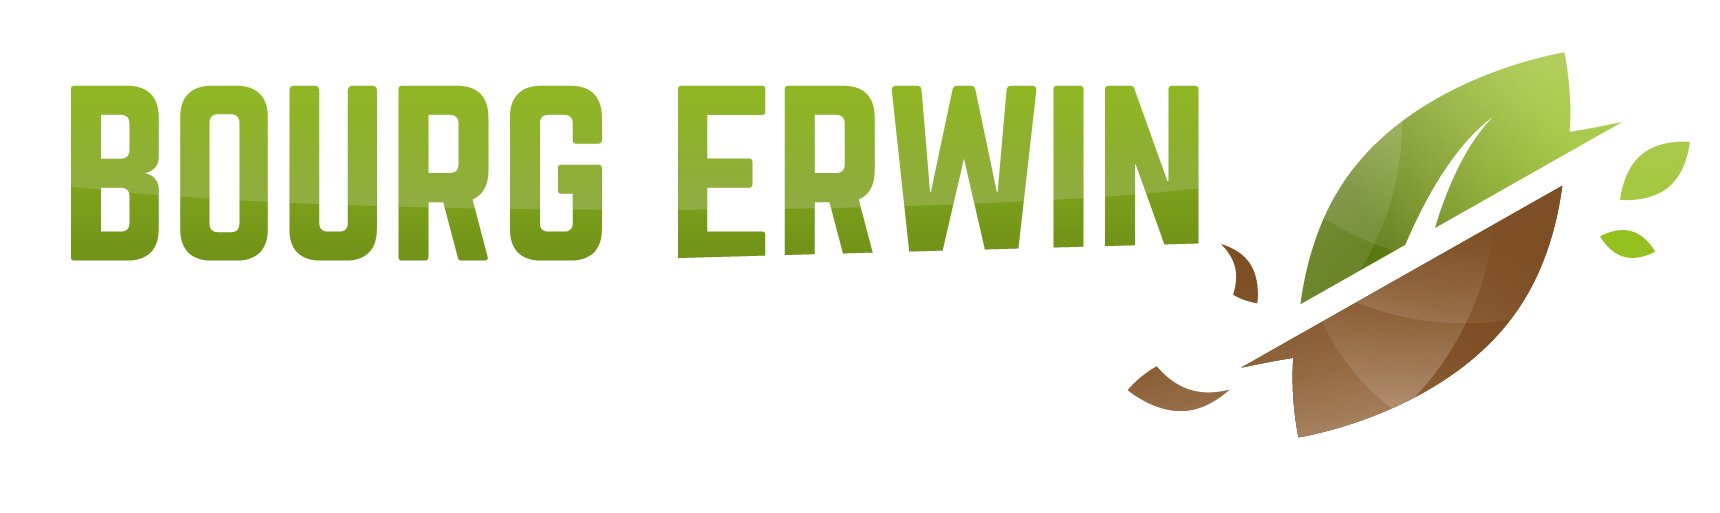 Ets Bourg Erwin